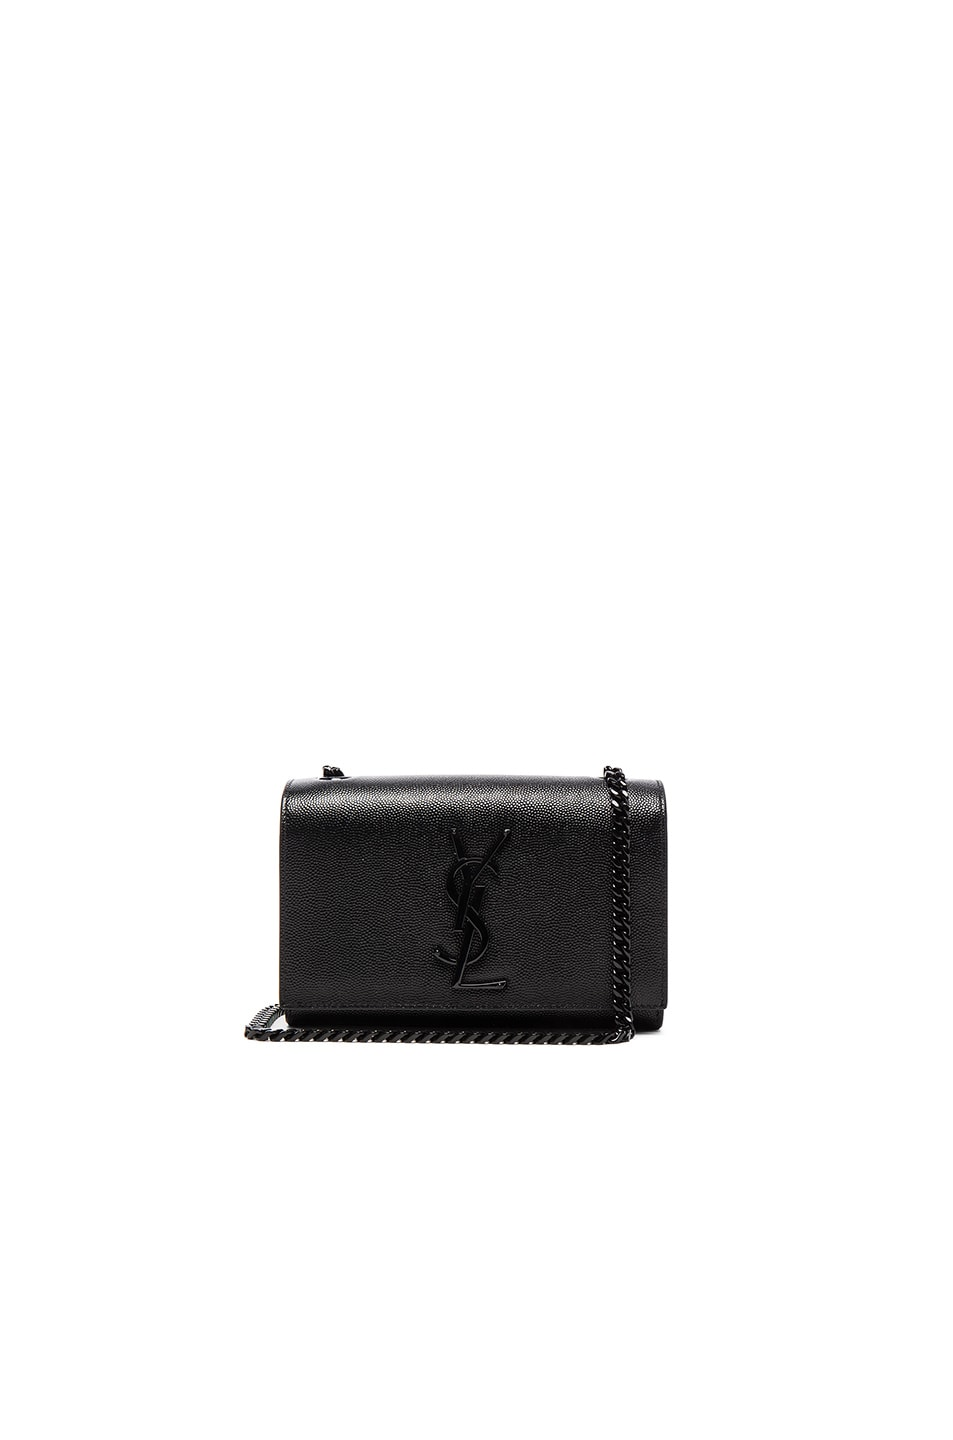 Image 1 of Saint Laurent Small Leather Monogramme Kate Chain Bag in Black & Black